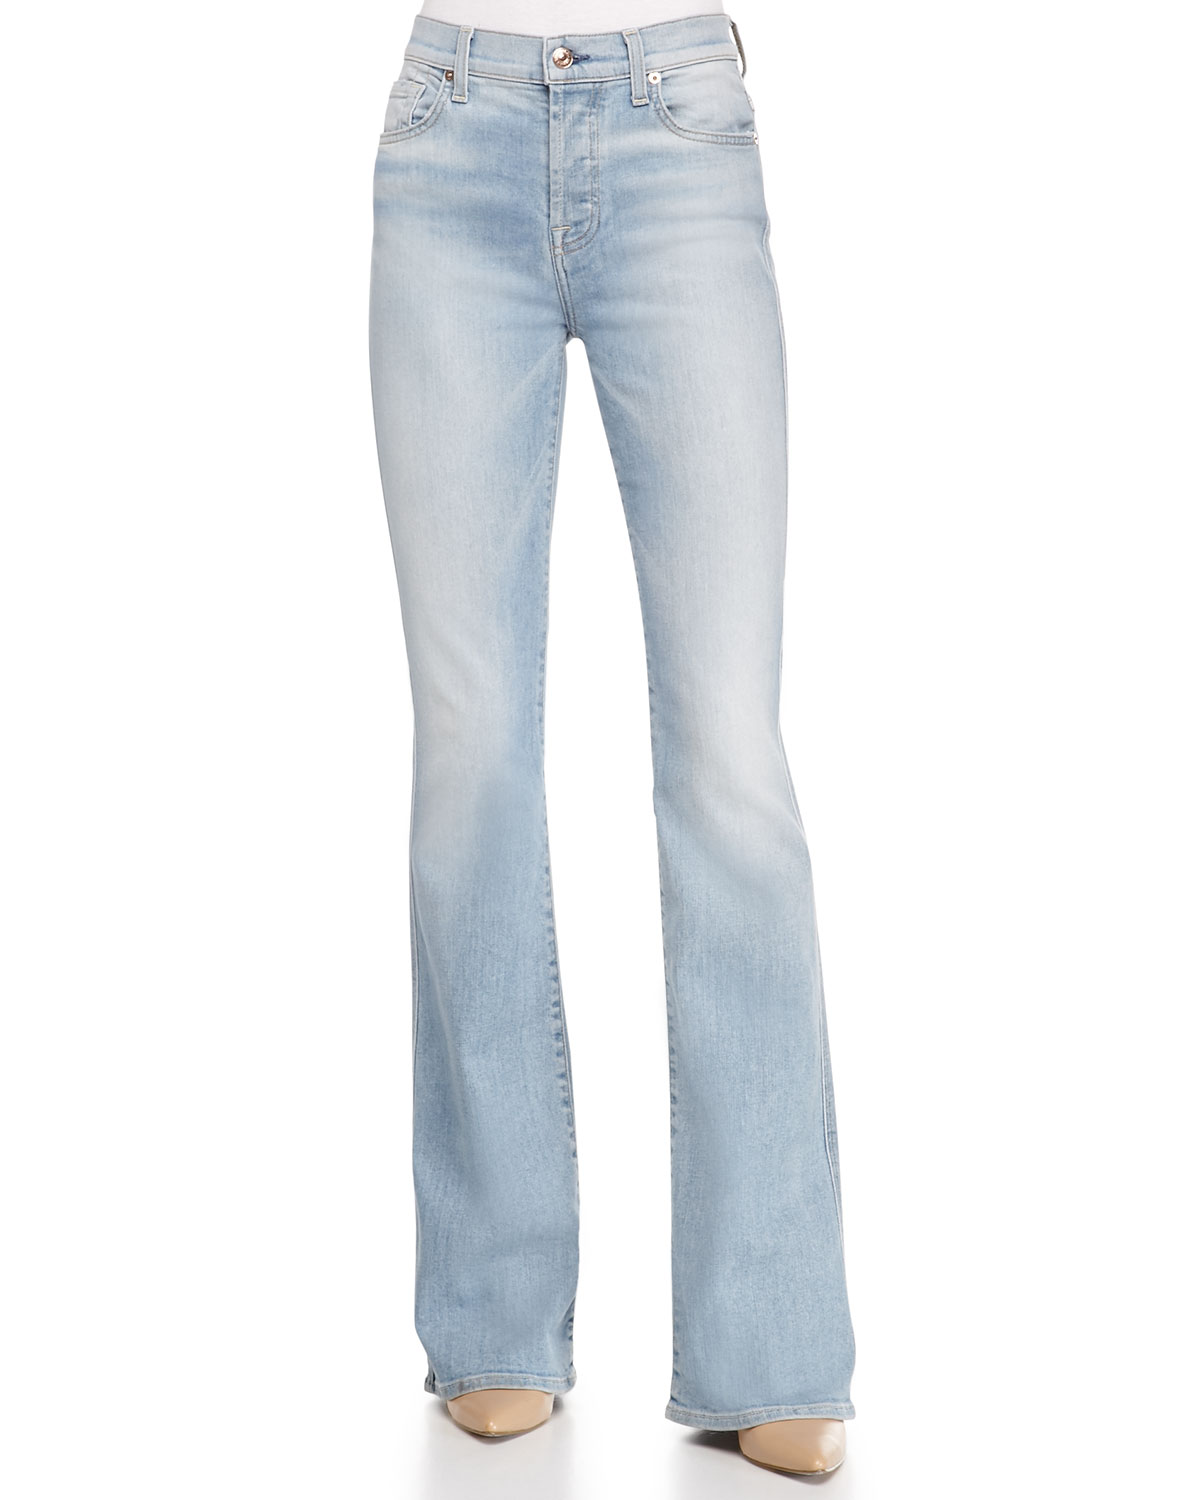 High-Waist Vintage Bootcut Jeans, Size: 28, Light Sky - 7 For All Mankind